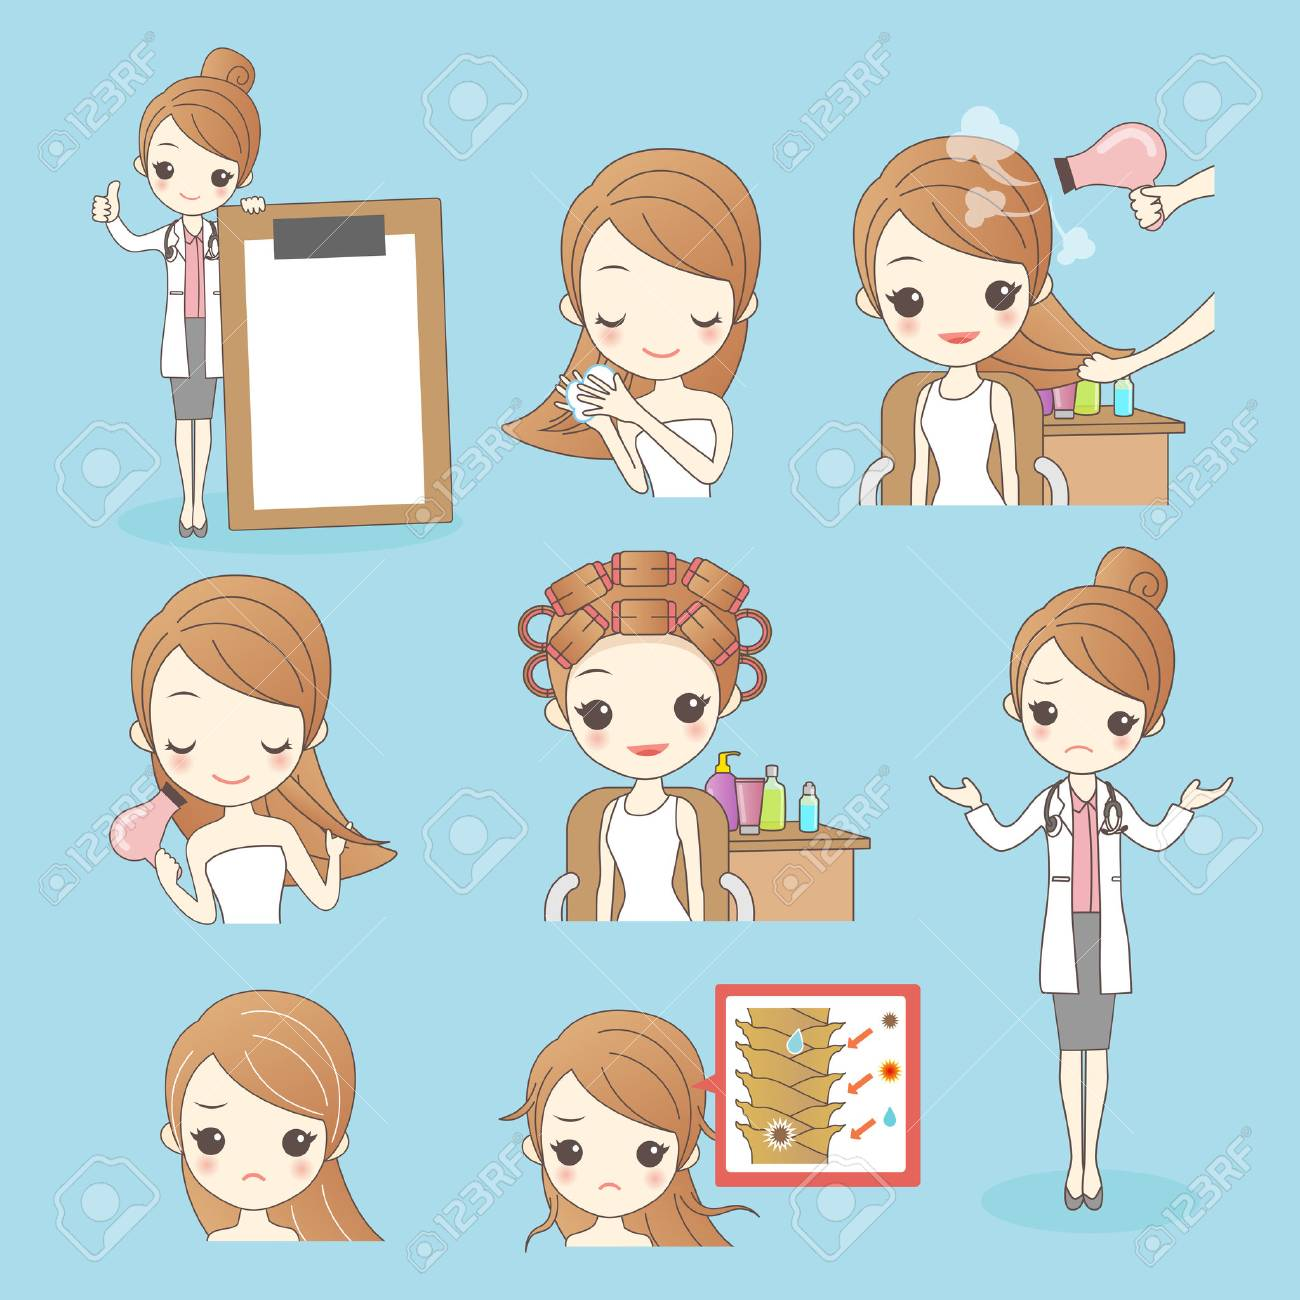 Beauty Cartoon Woman With Hair Salon Isolated On Blue Background Royalty Free Cliparts Vectors And Stock Illustration Image 72893196